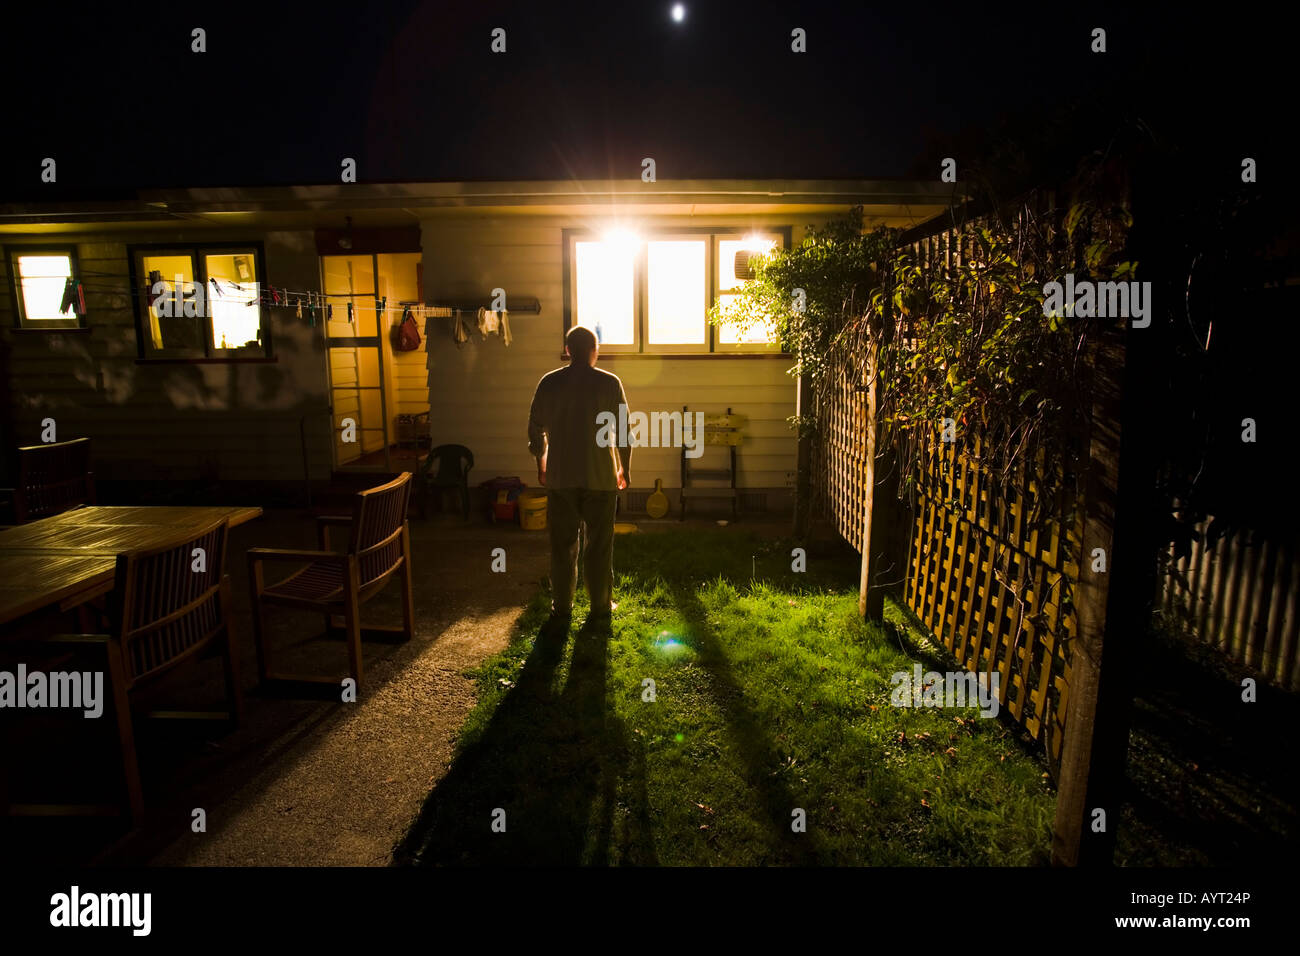 Watching through the window, man looks in house from garden at night in darkness Stock Photo